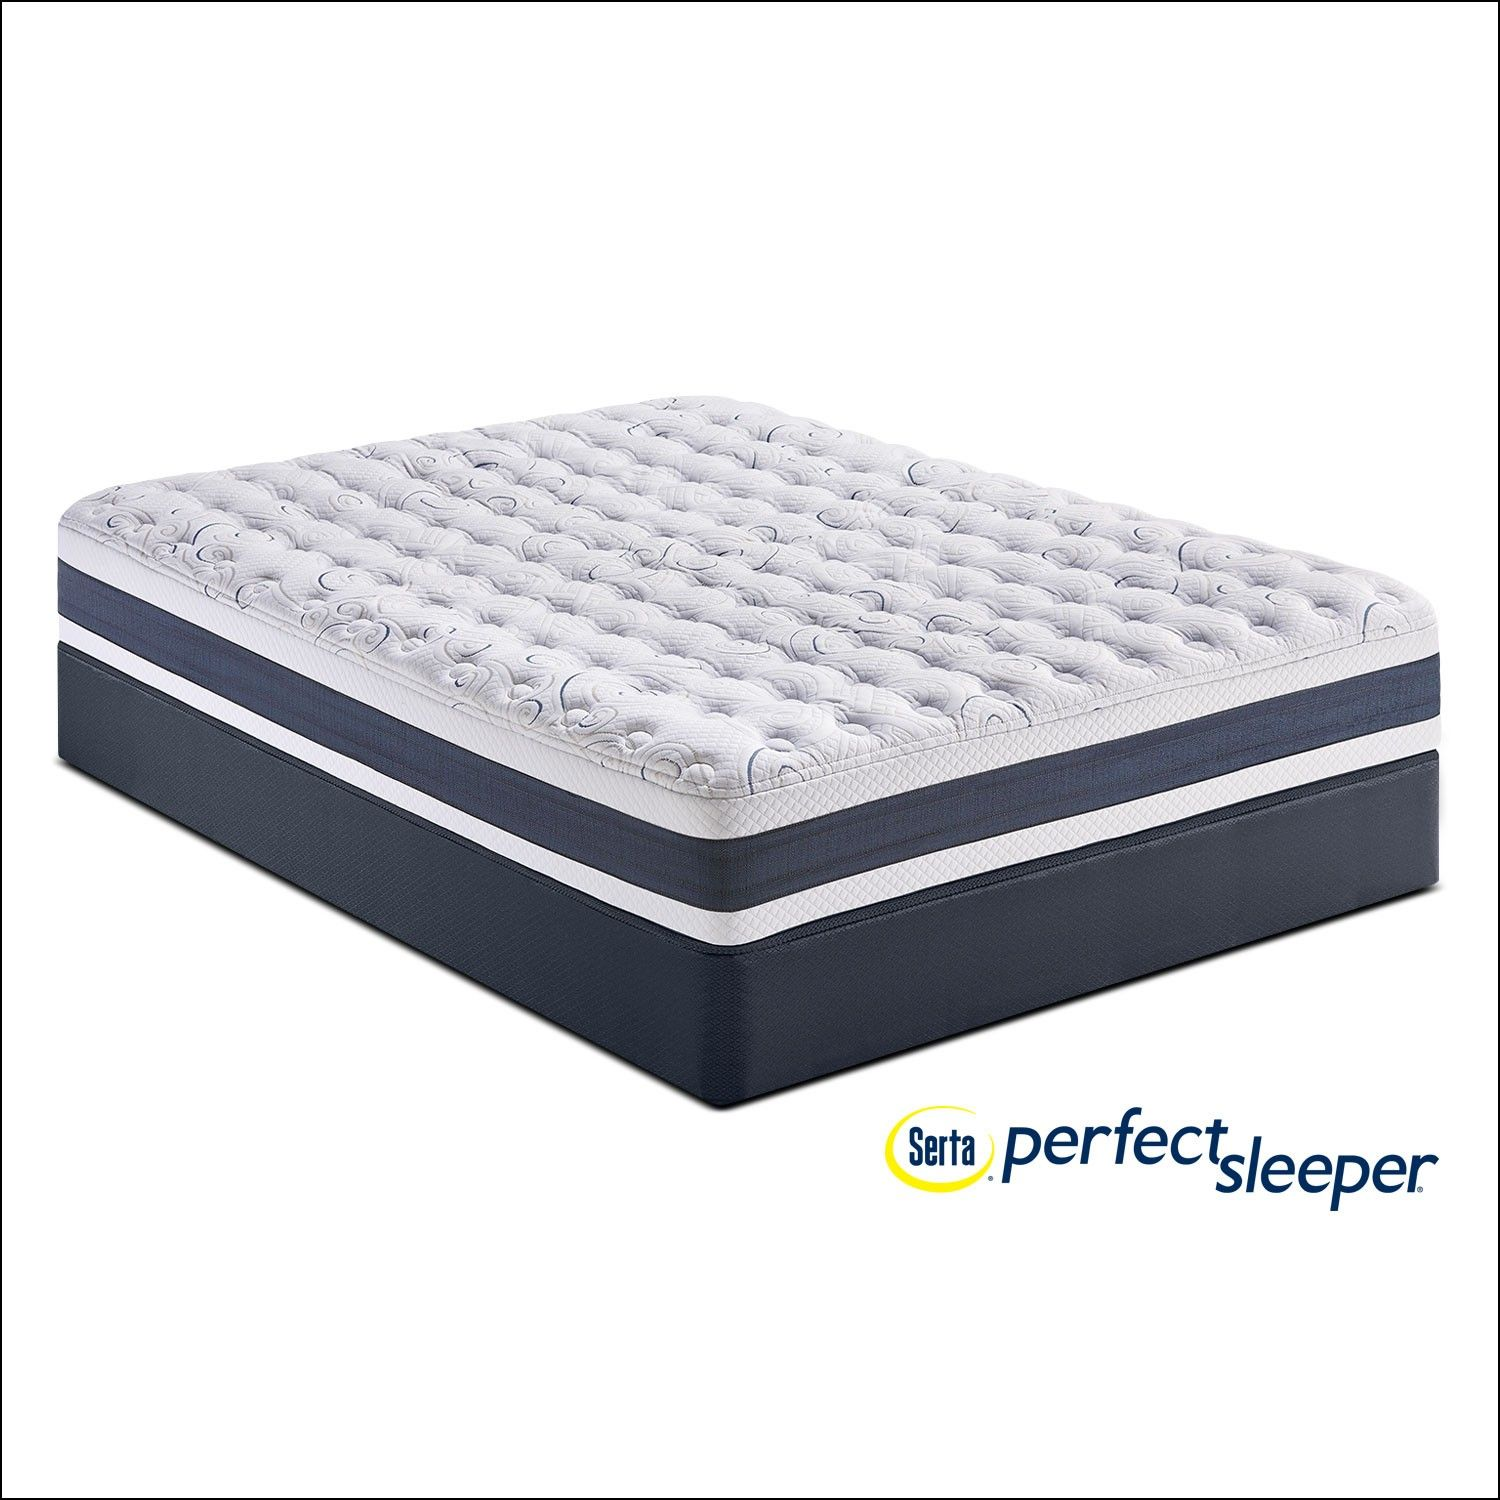 twin xl mattress set sale mattress ideas pinterest twin xl